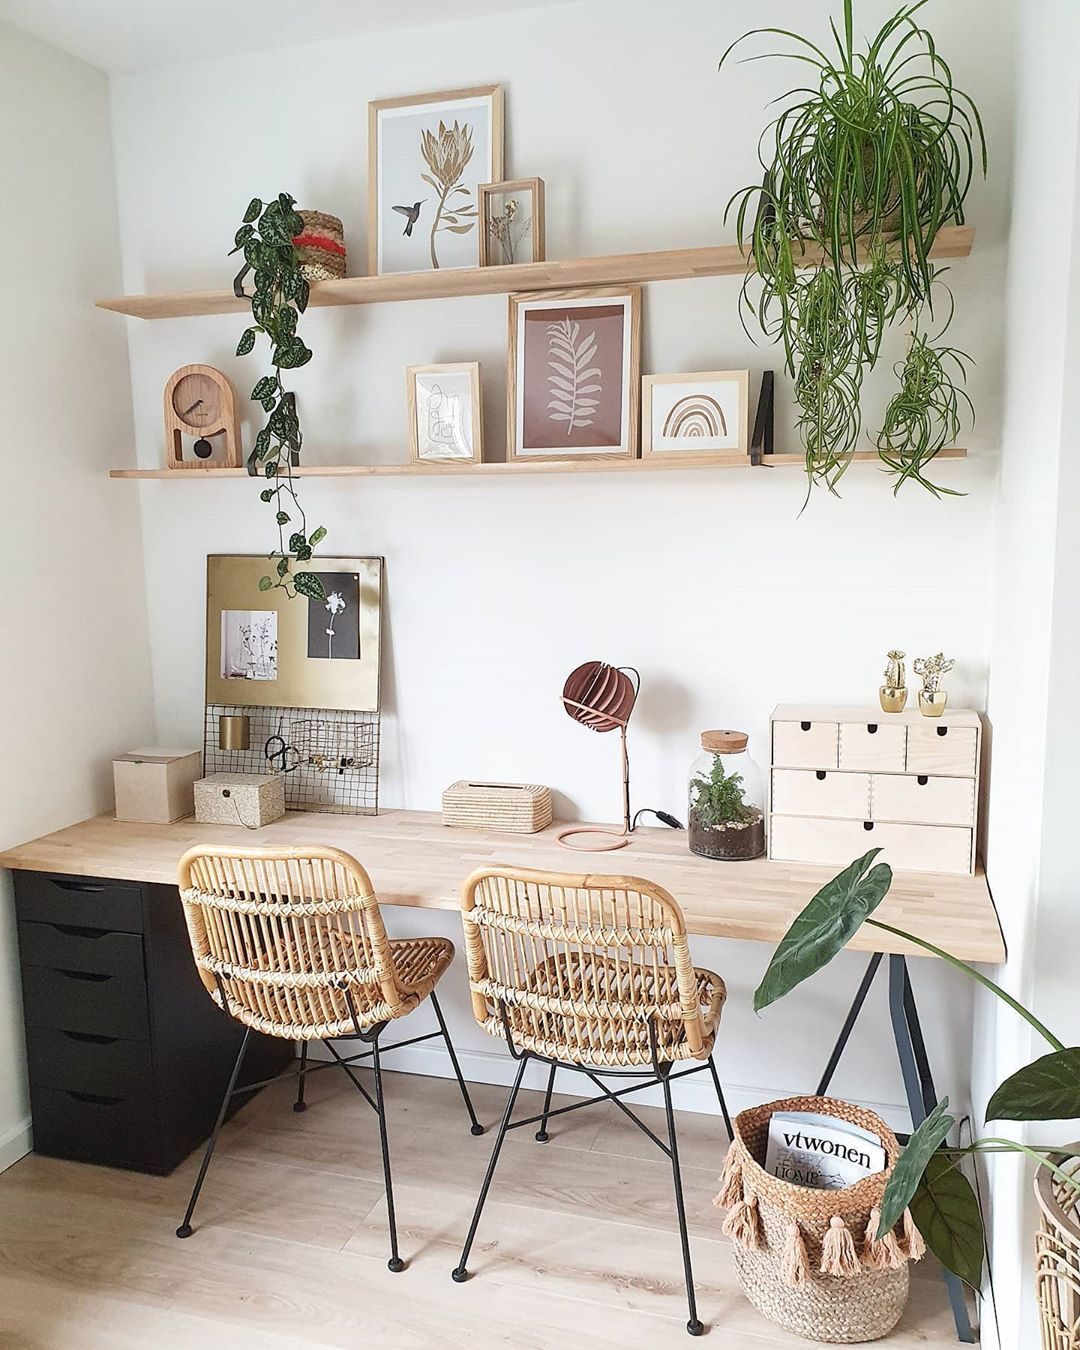 Natural and fresh workspace by @nieks_servies. Live plants are not only very fashionable right now, but they can also lighten your mood and make your home office look fresher. Read more on DecorMatters.com/blog. Click the image to try our free home design app.  (Keywords: dream rooms, interior design wall, small office, desk setup, office decor, storage design, home decor storage ideas, diy home decor, office wall decor, home office ideas, office design home, bedroom ideas, bedroom decor)